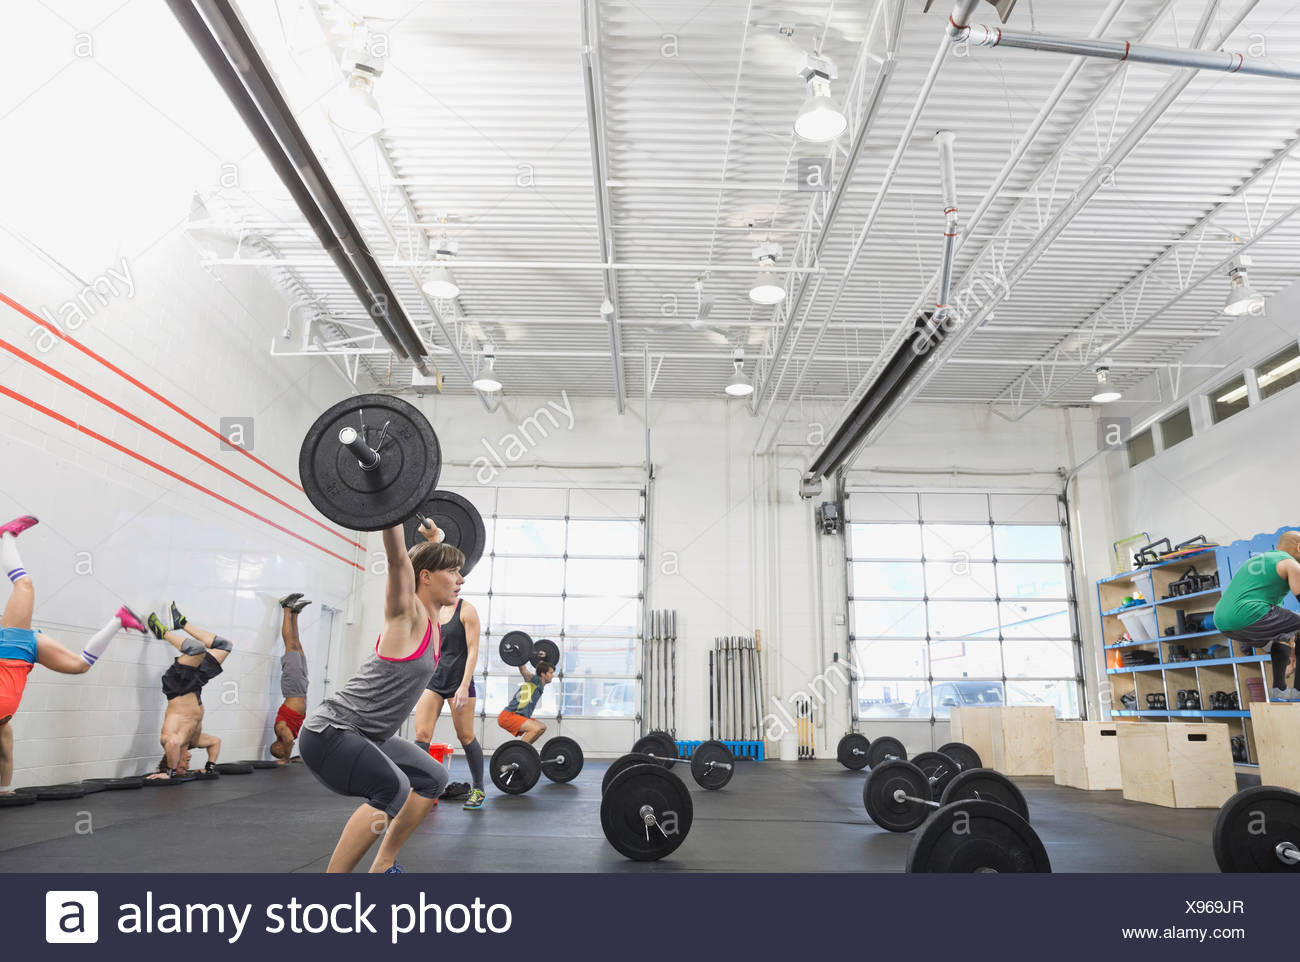 Group of people in Crossfit class - Stock Image